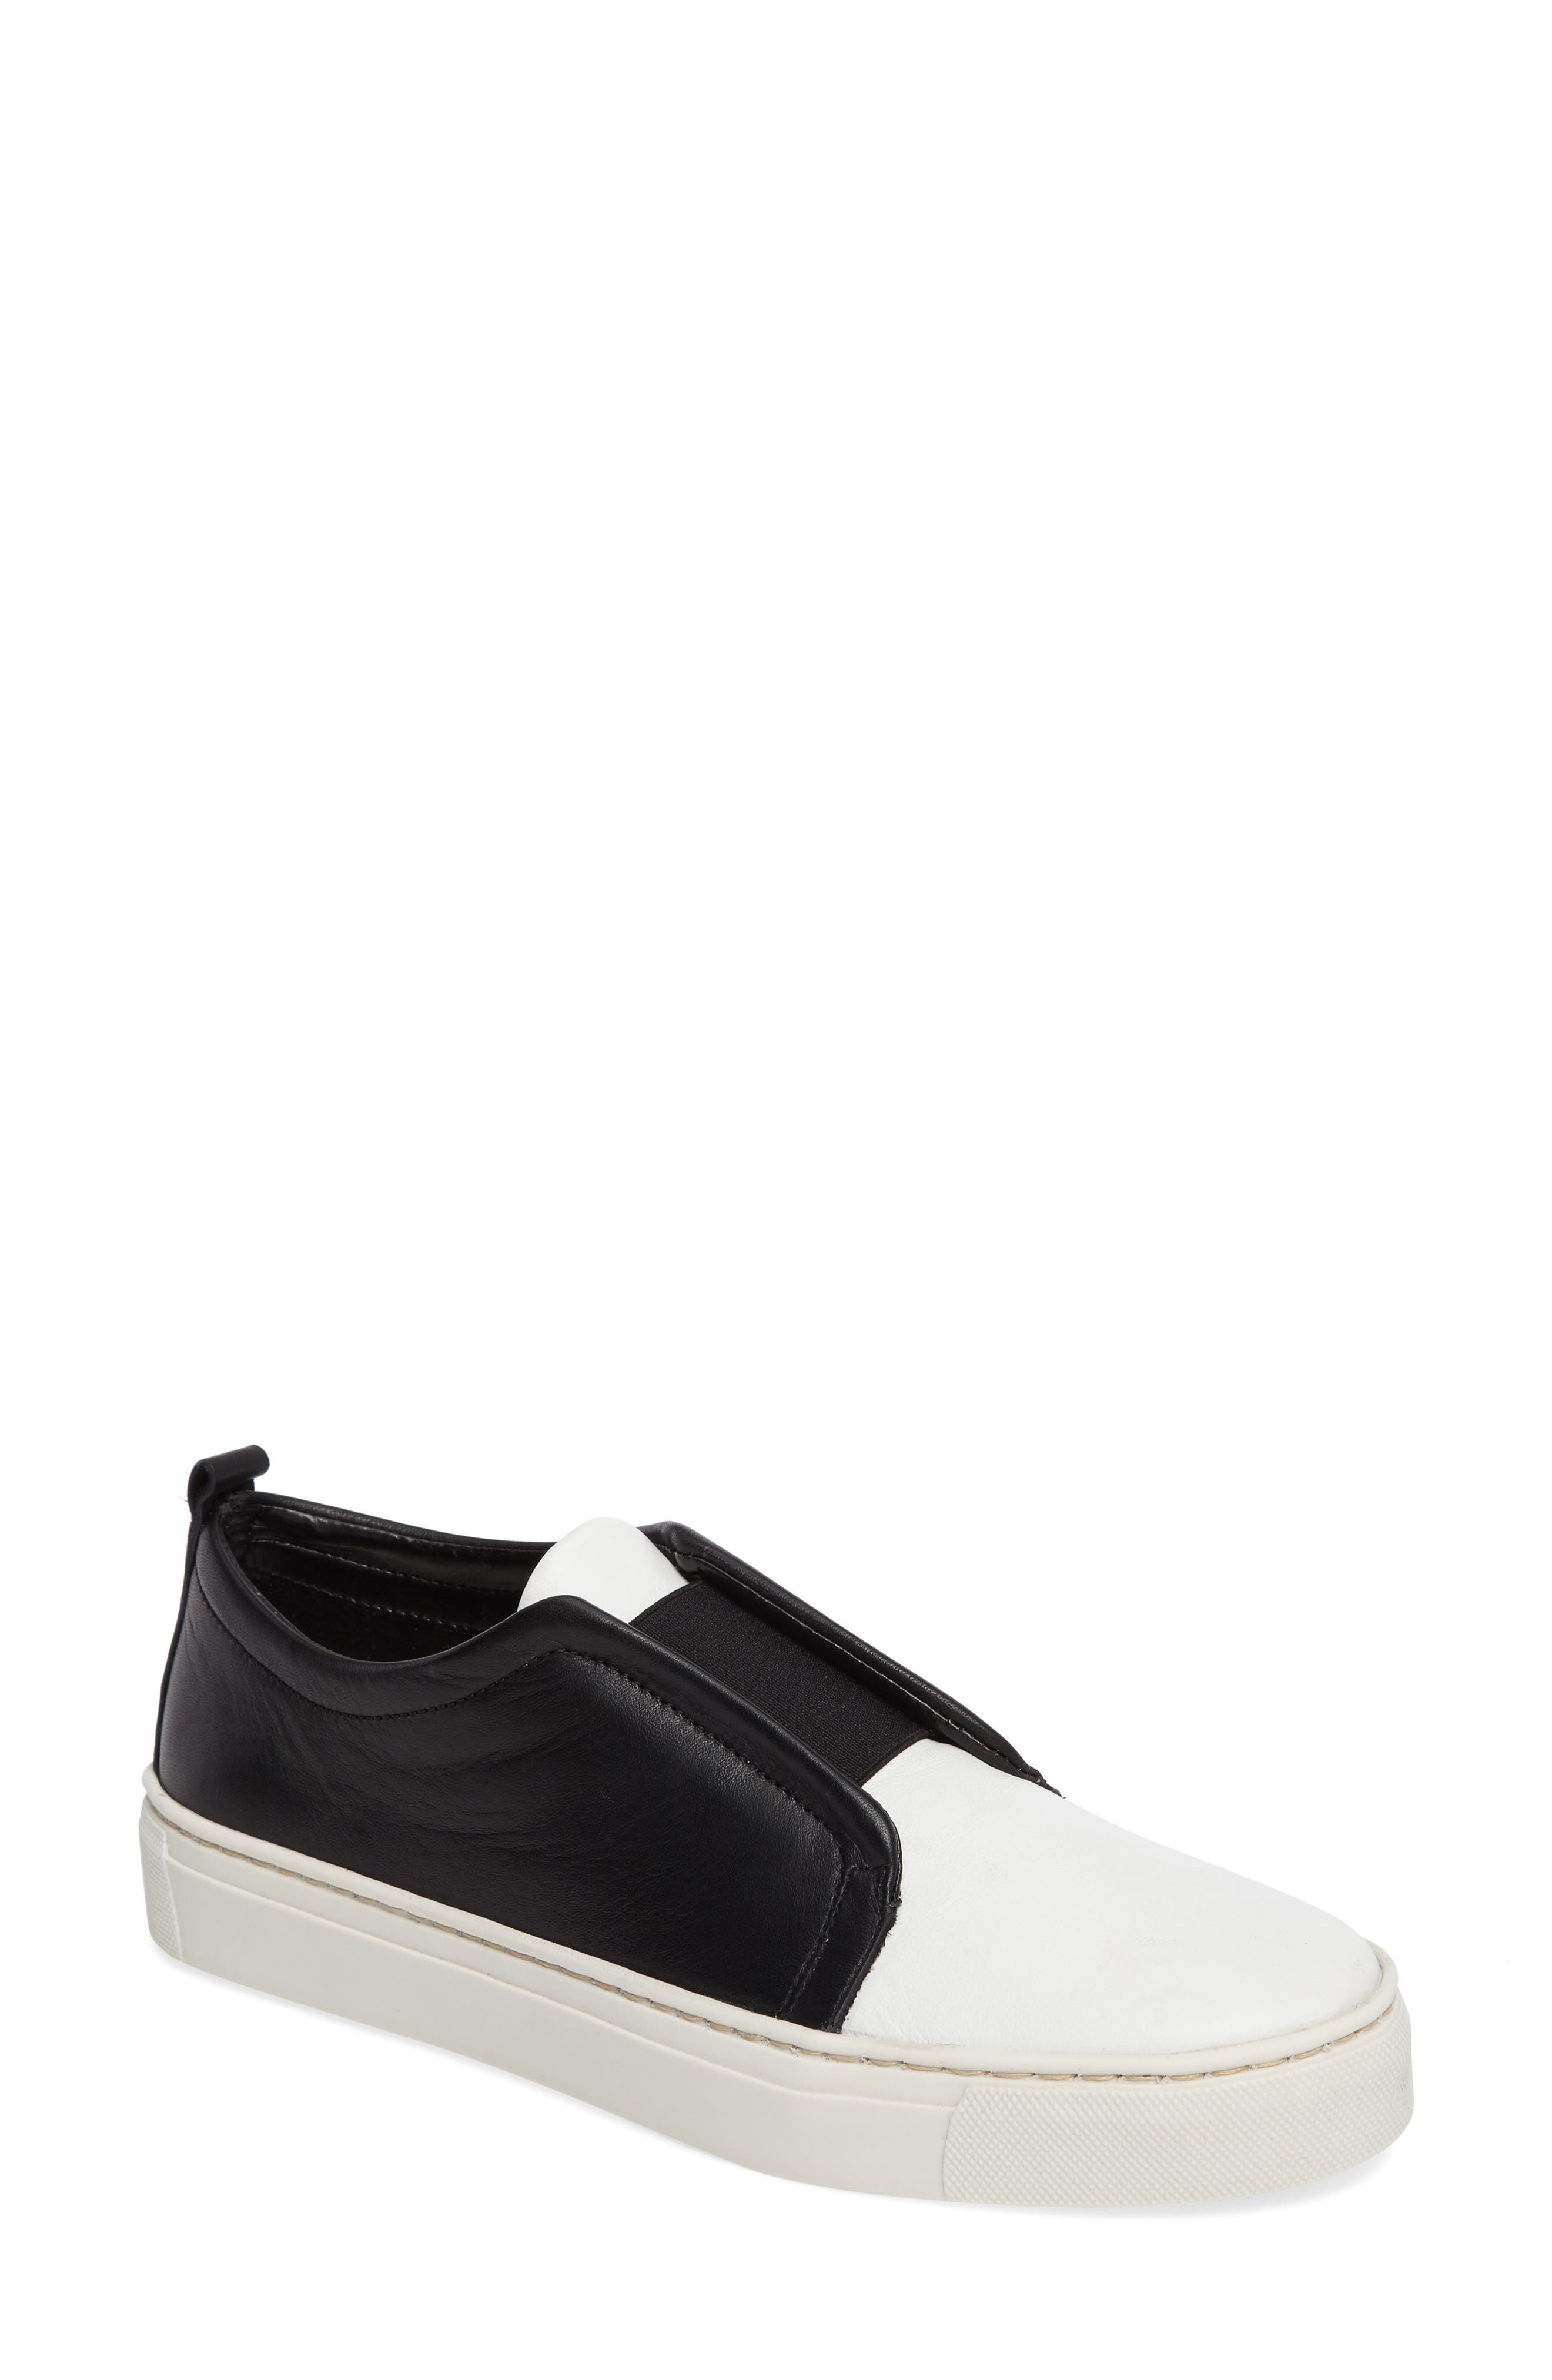 Alternate Image 1 Selected - The FLEXX Rapture Slip-On Sneaker (Women)